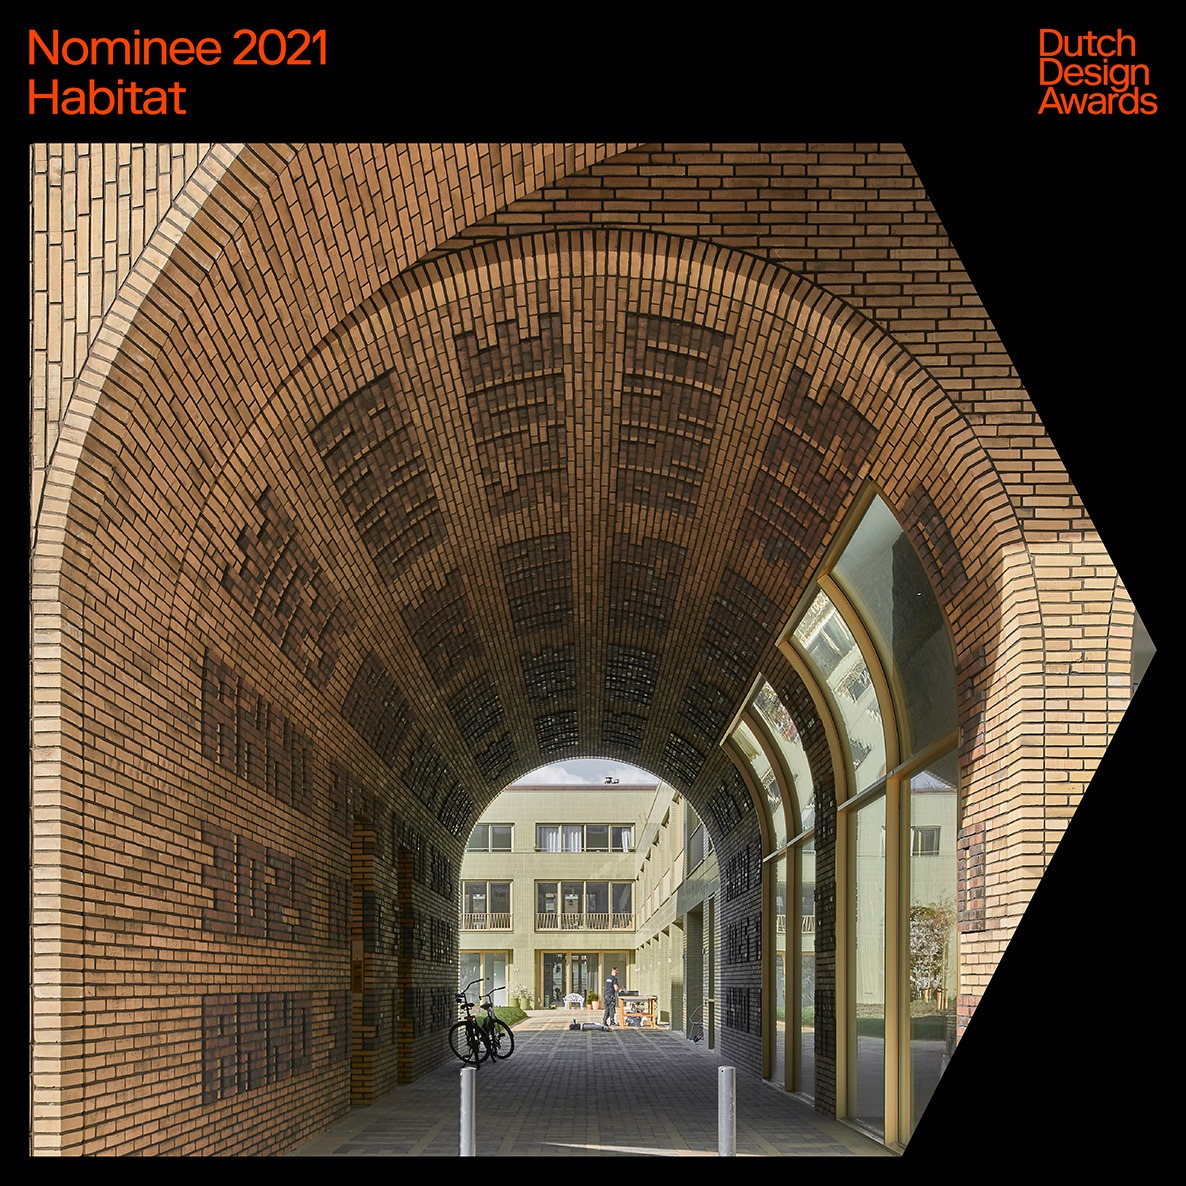 Spaarndammerhart nominated for the Dutch Design Awards 2021 category Habitat